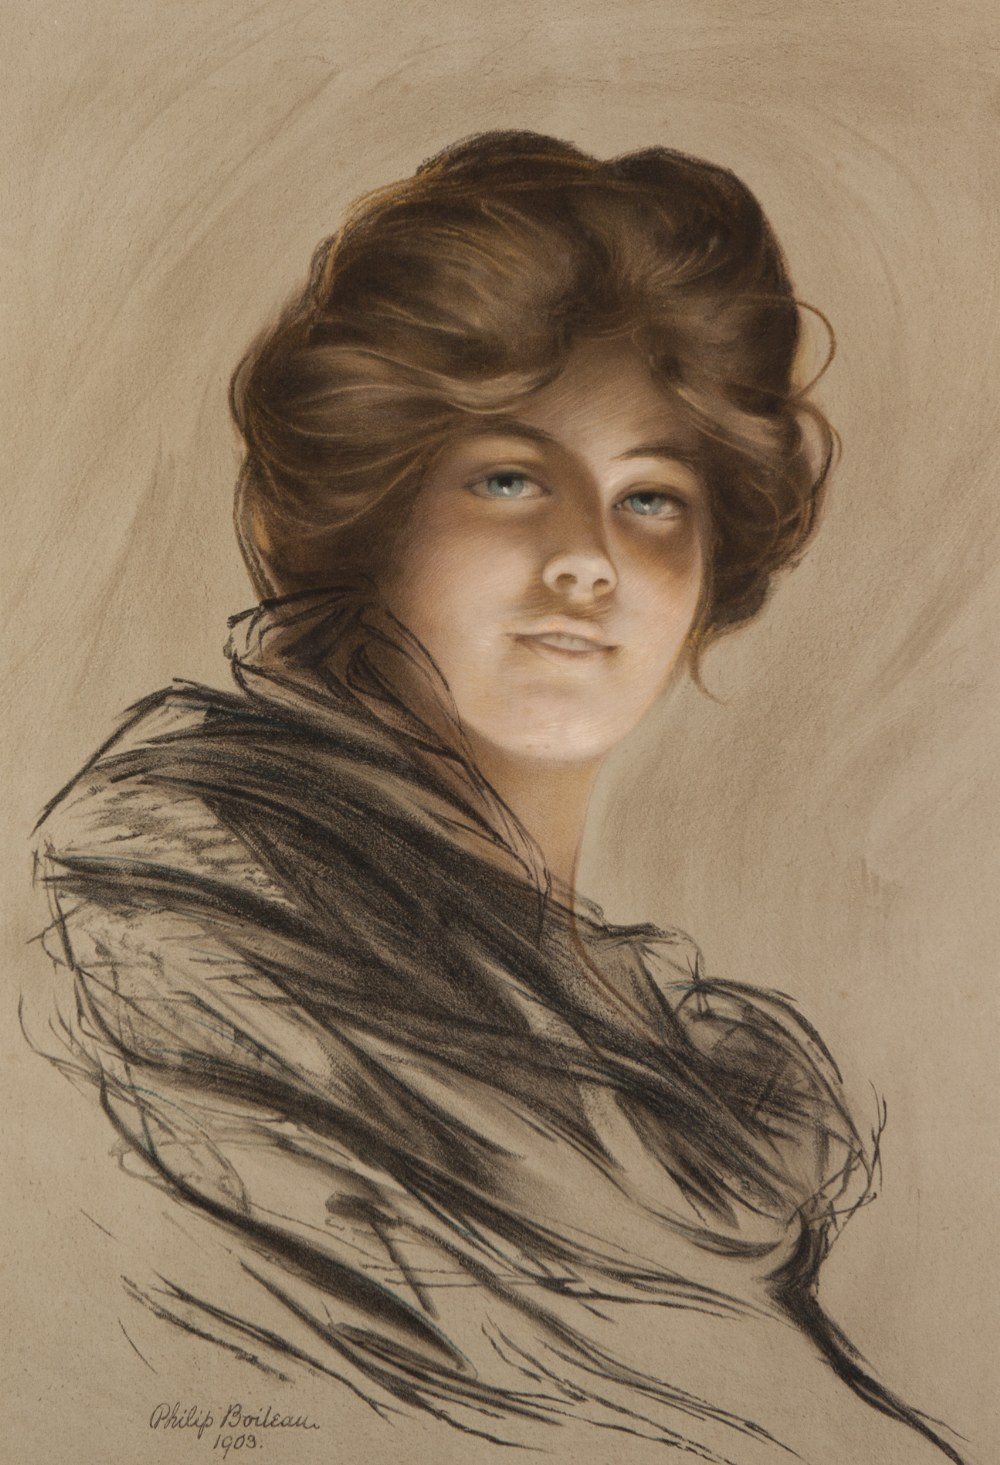 Lot 226 - PHILIP BOILEAU (1864-19170 PRINT ON COLOURED PAPER Bust length female portrait Signed and dated 1903